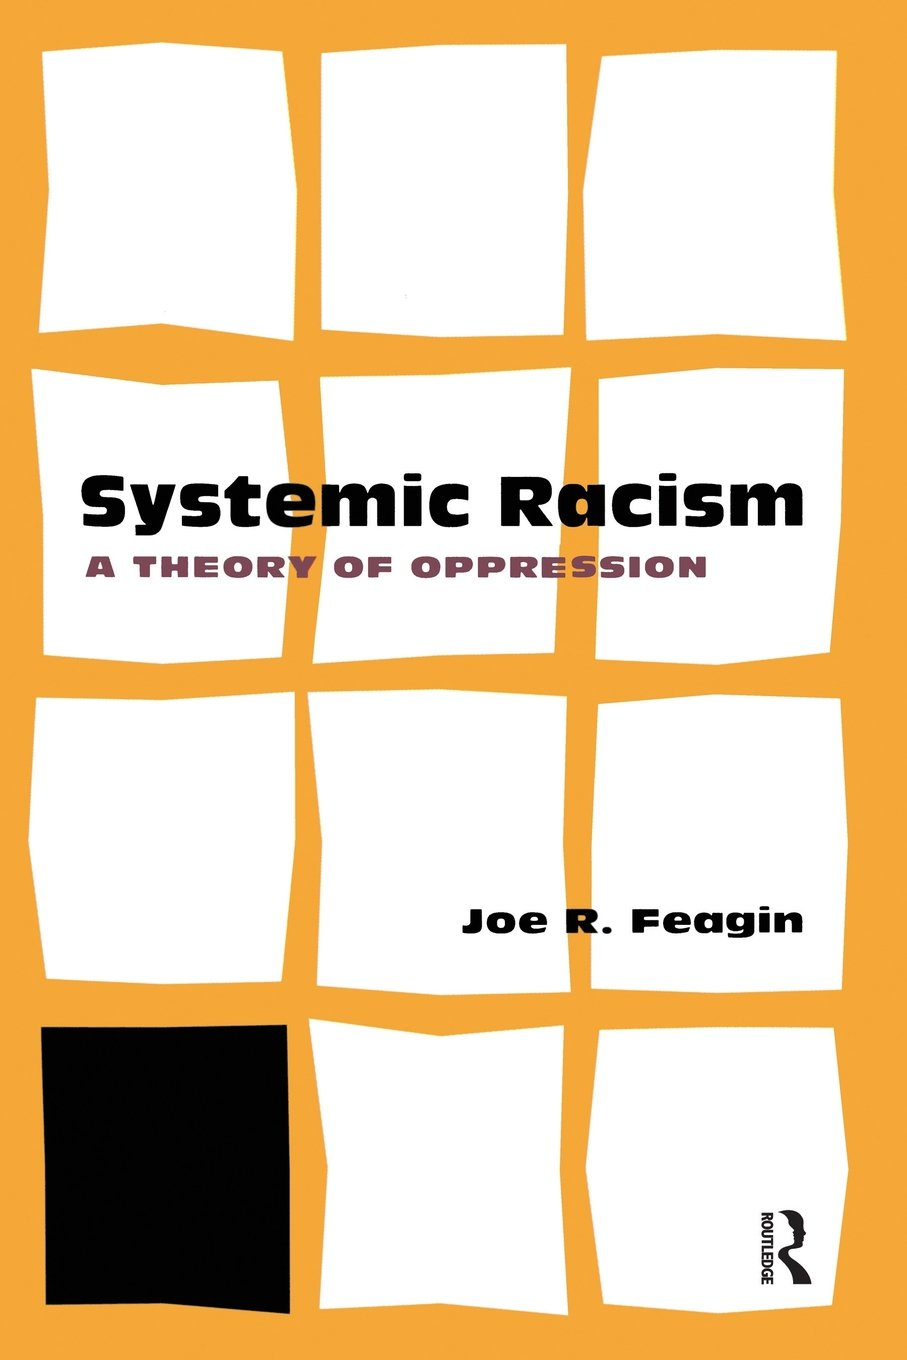 systemic racism a theory of oppression joe feagin 9780415952781